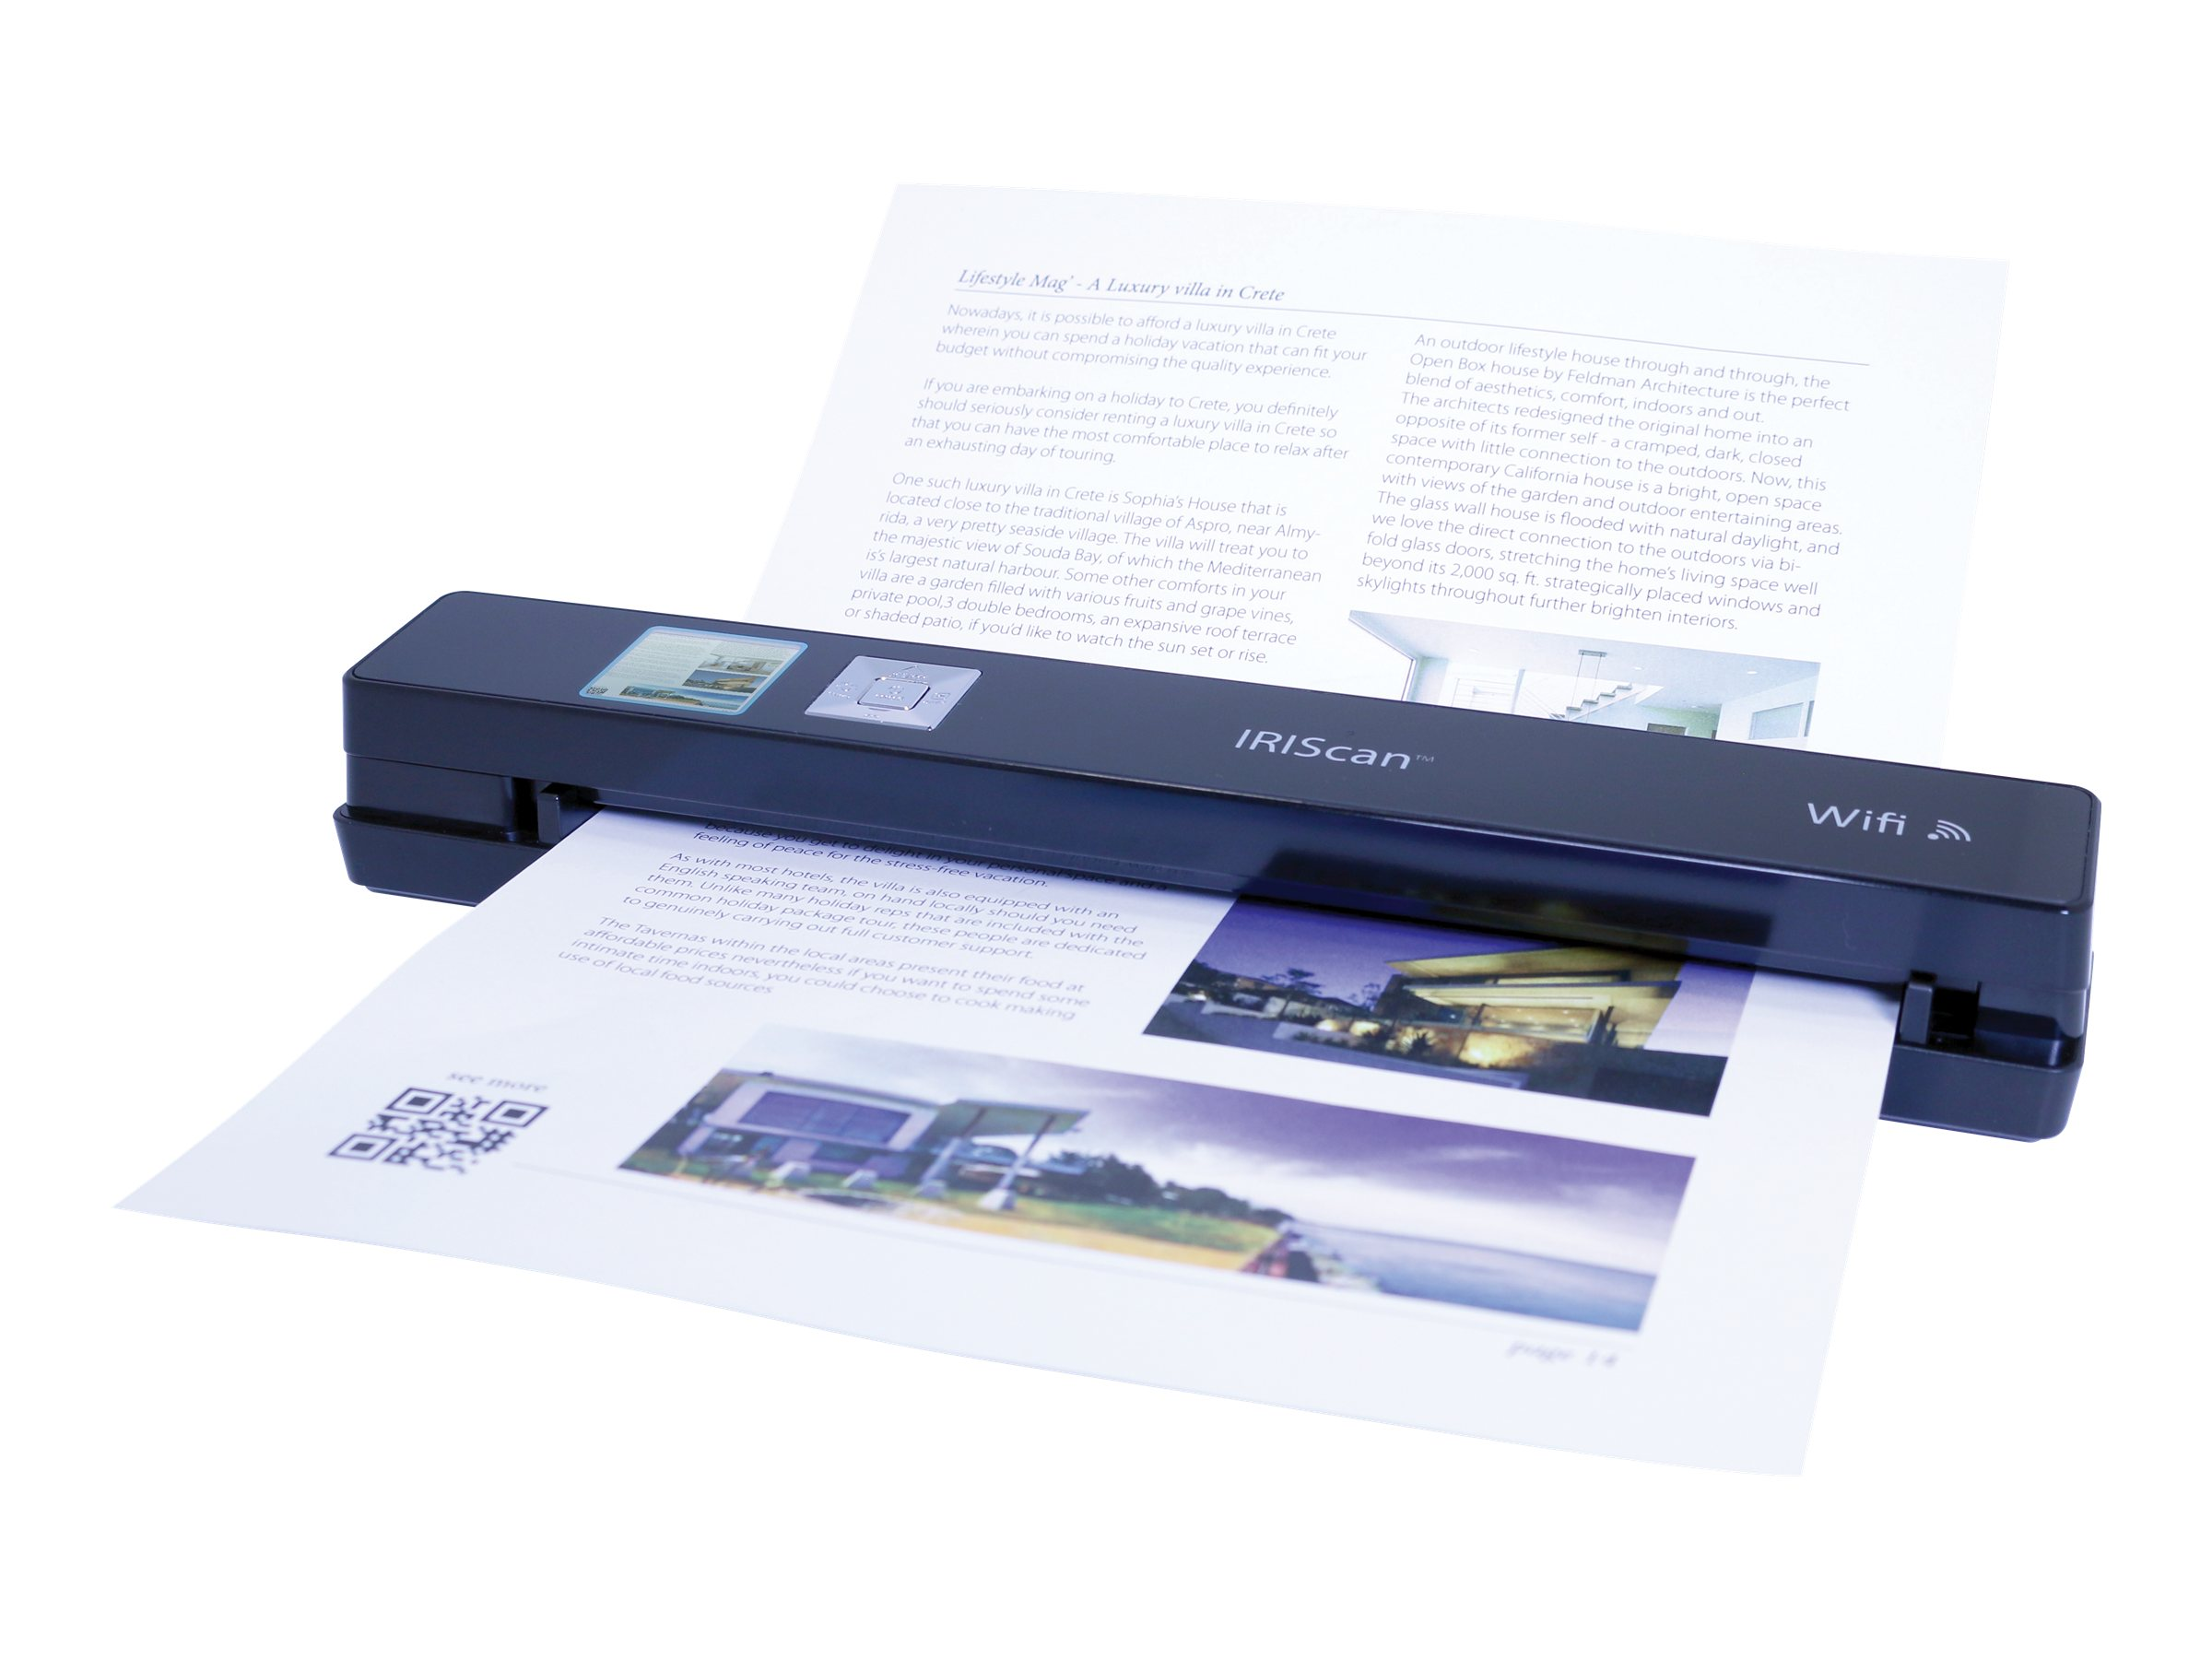 IRIS Iriscan Anywhere 3 WiFi Mobile Sheet-fed Scanner